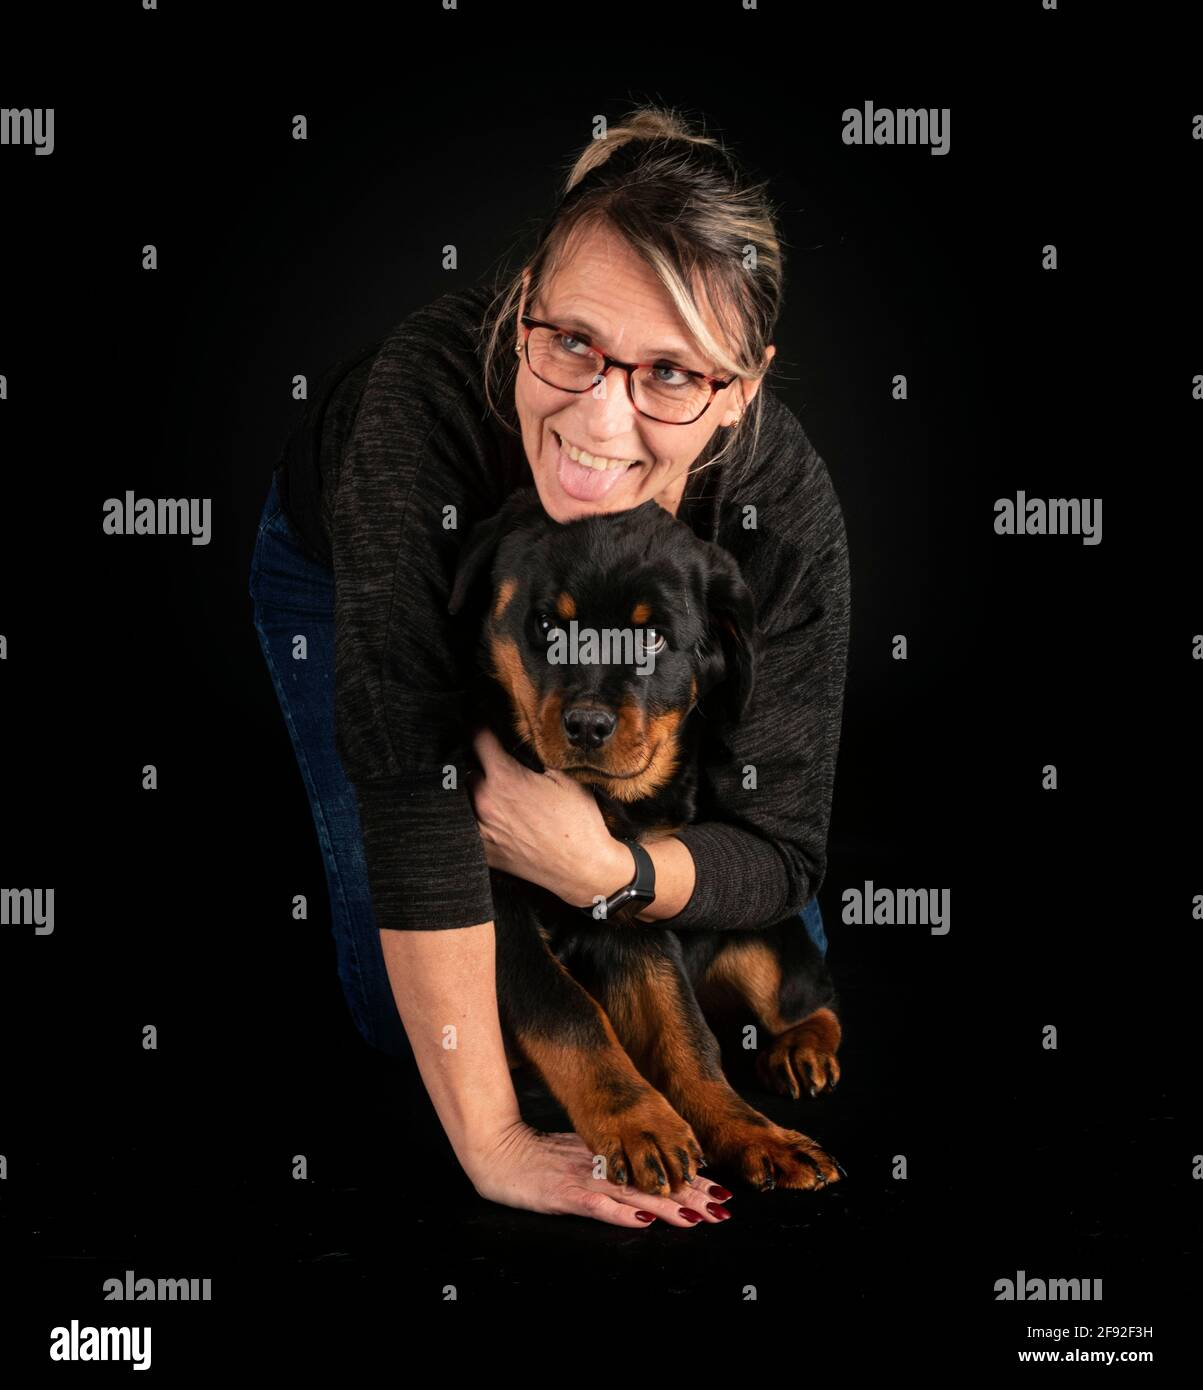 purebred rottweiler and woman in front of black background Stock Photo